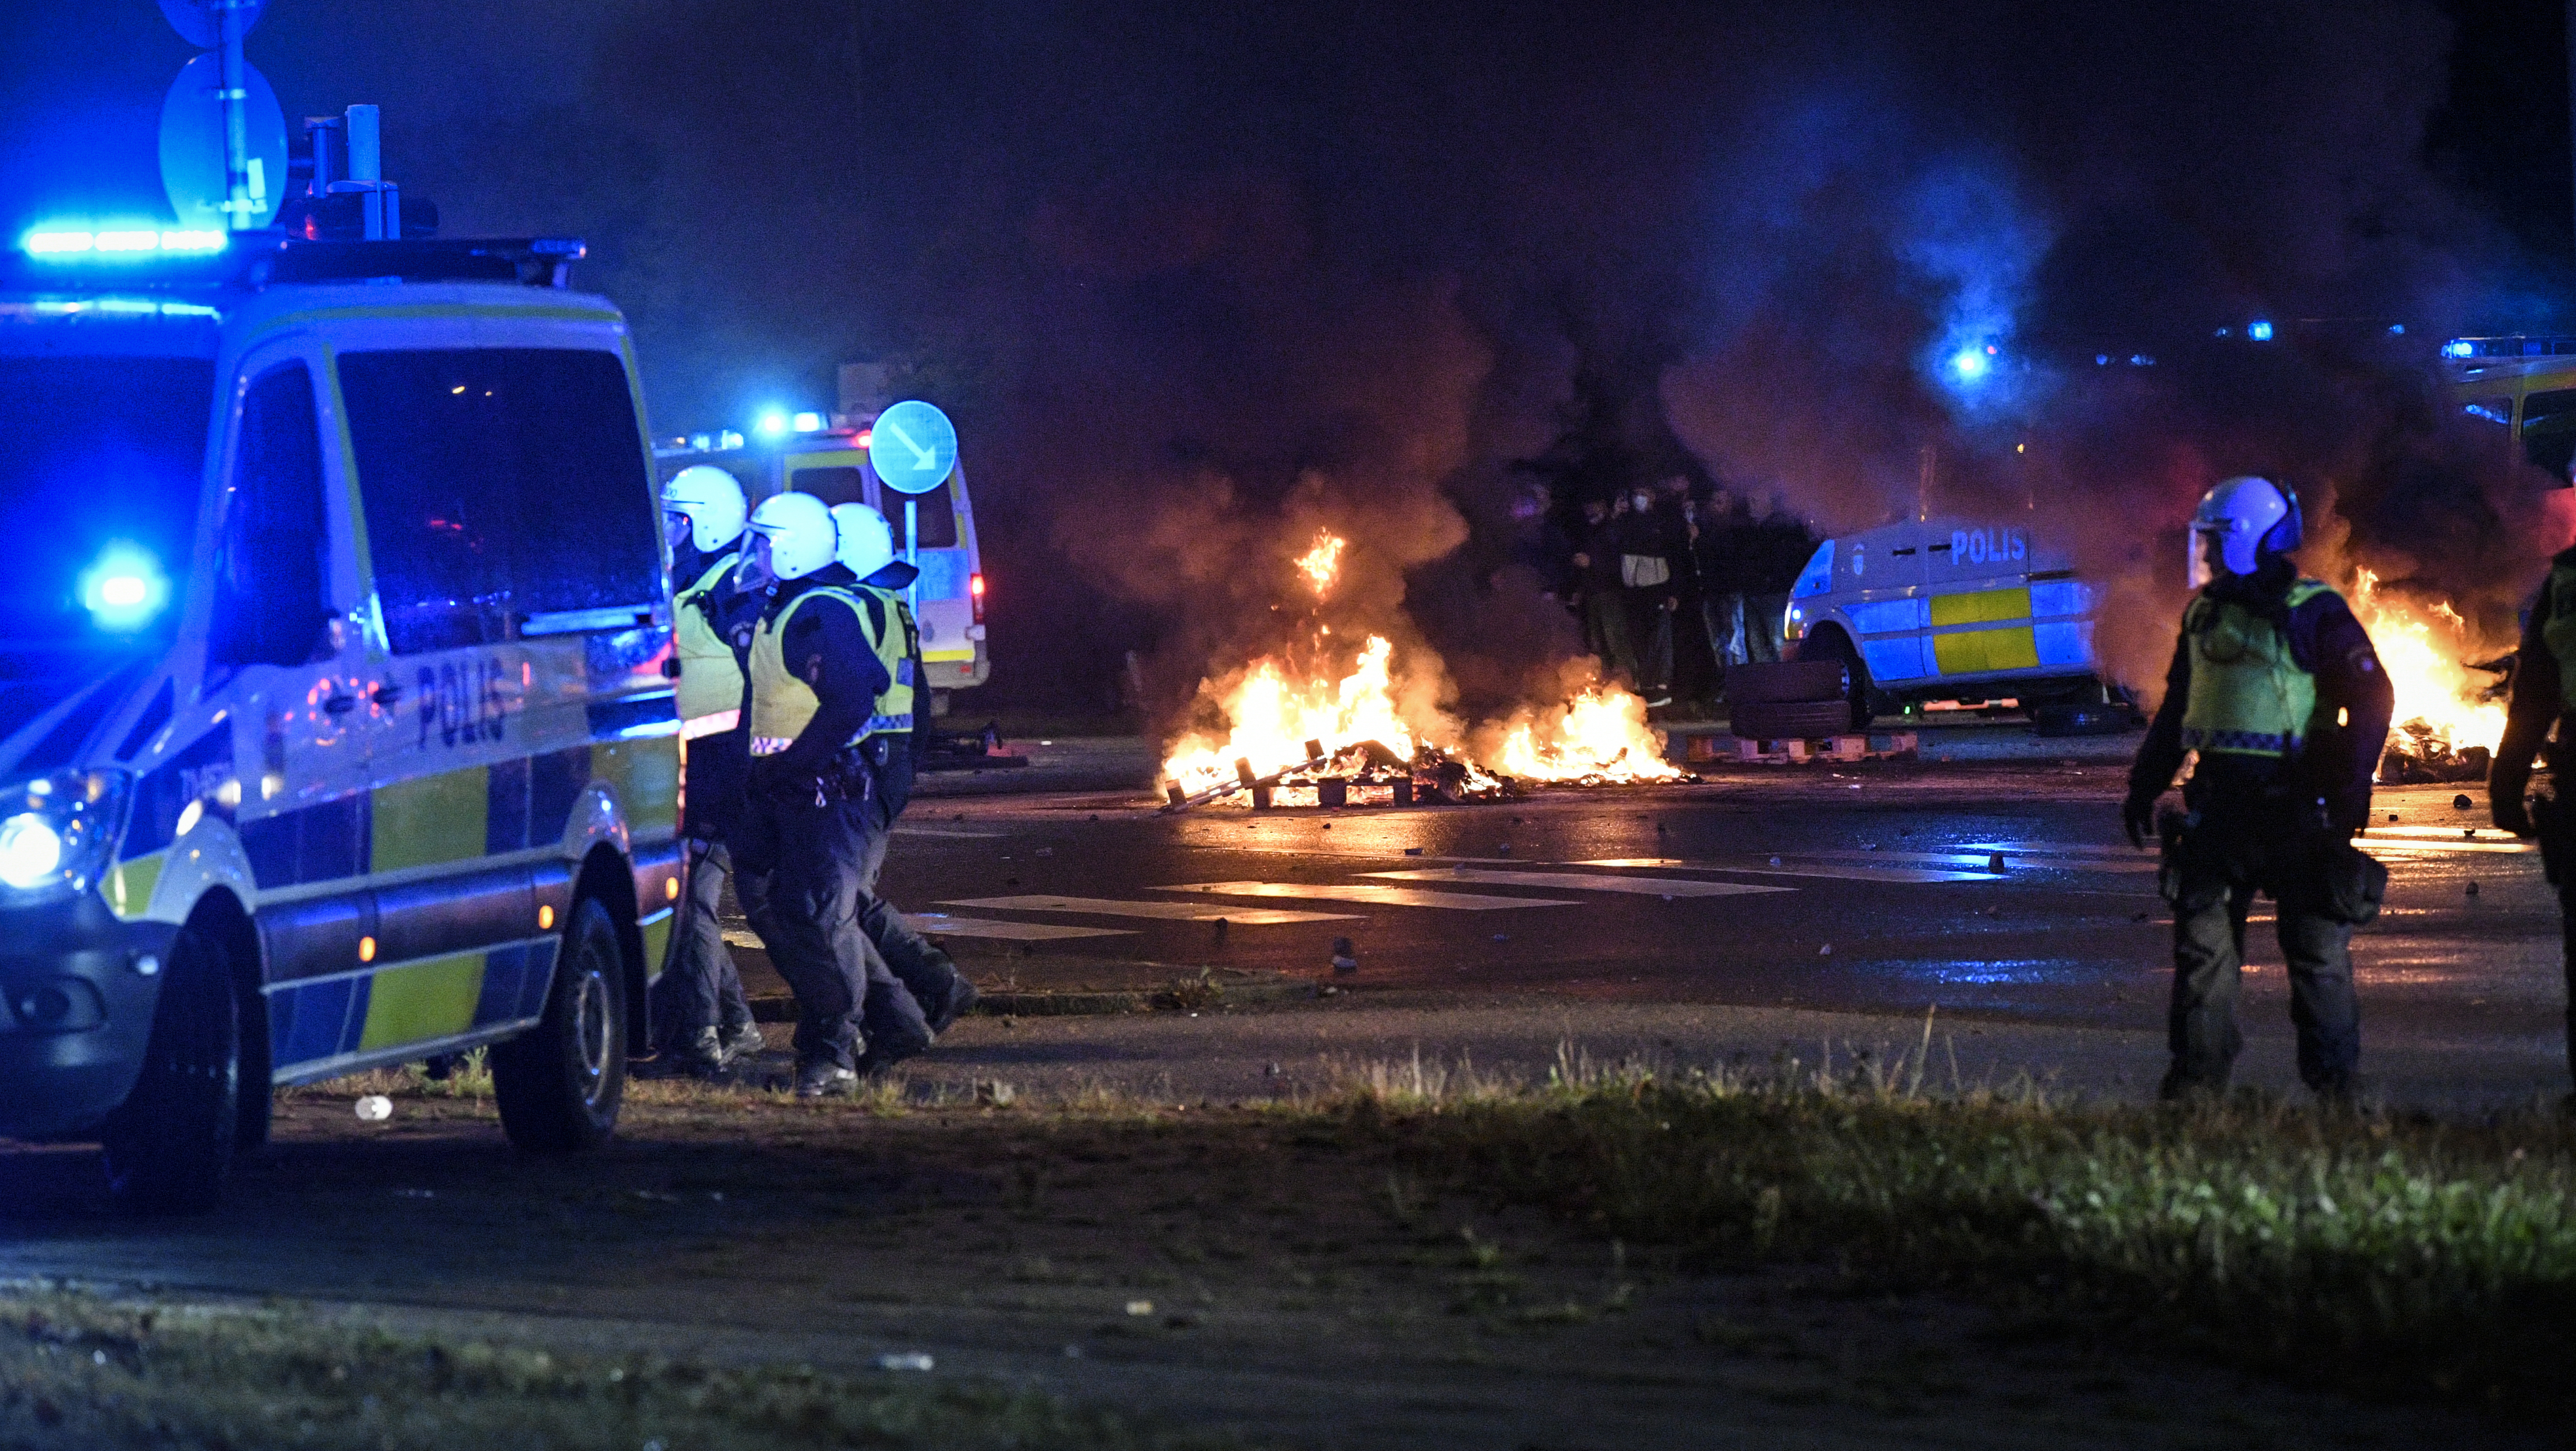 Riot police on the scene as smoke billows from burning tires and fireworks, as a few hundred protesters riot in the Rosengard neighbourhood of Malmo, Sweden, Friday, Aug. 28, 2020. Far-right activists burned a Quran in the southern Swedish city of Malmo, sparking riots and unrest after more than 300 people gathered to protest, police said Saturday. Rioters set fires and threw objects at police and rescue services Friday night, slightly injuring several police officers and leading to the detention of about 15 people. Photo: AP